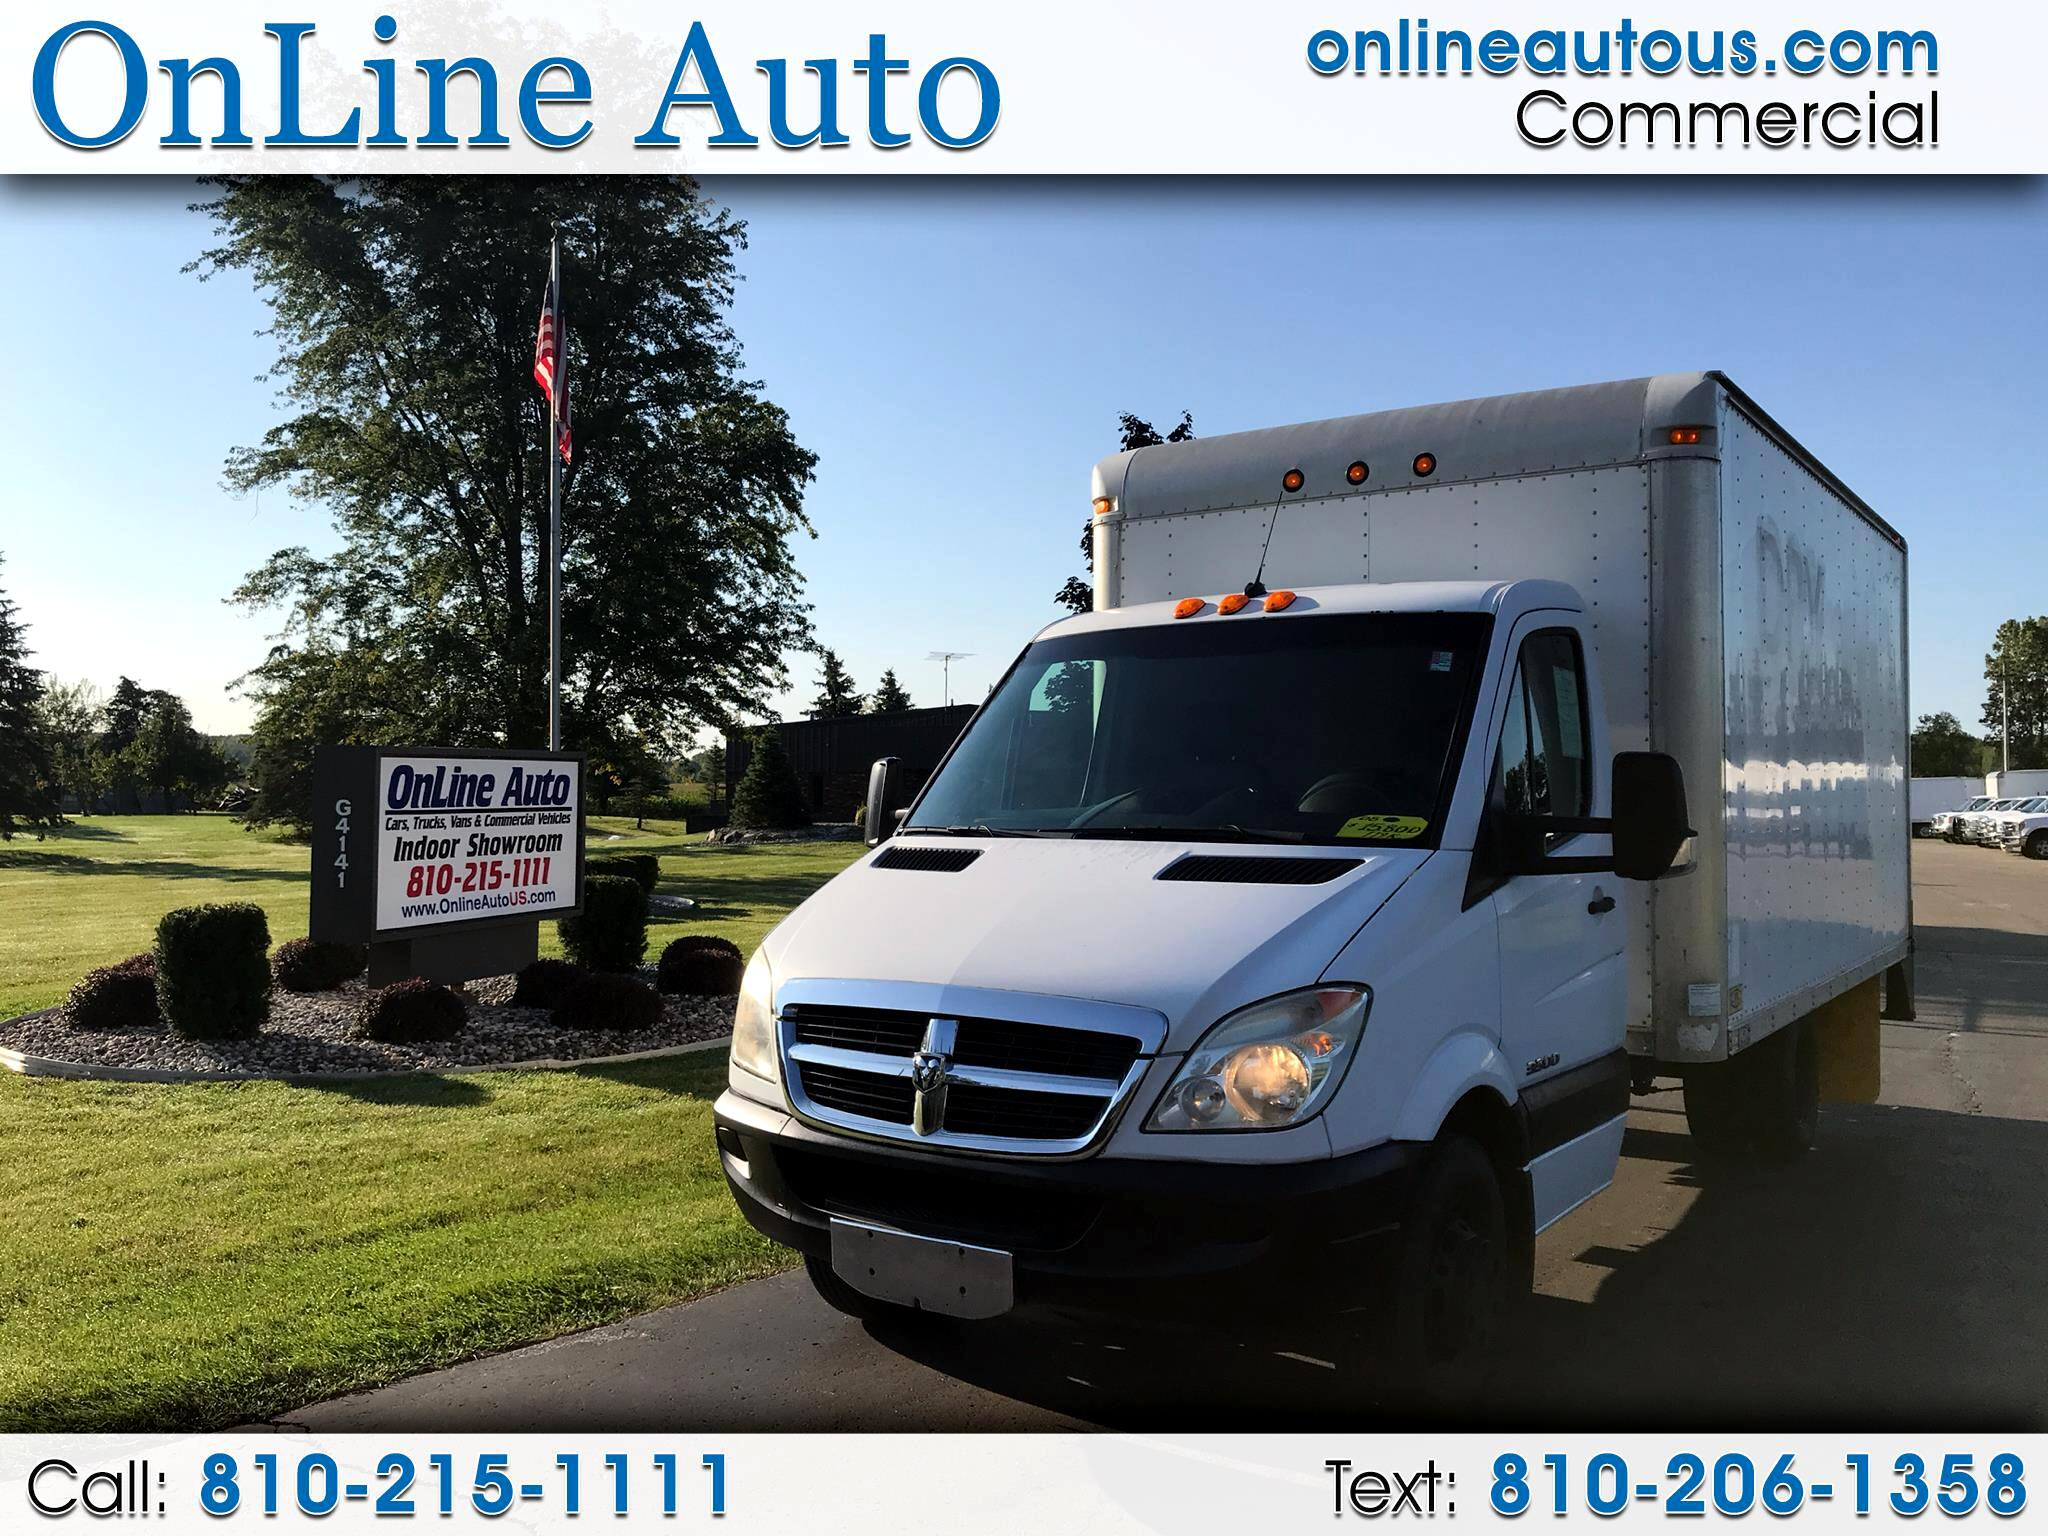 2008 Dodge Sprinter 3500  16' BOX CUTAWAY  DIESEL